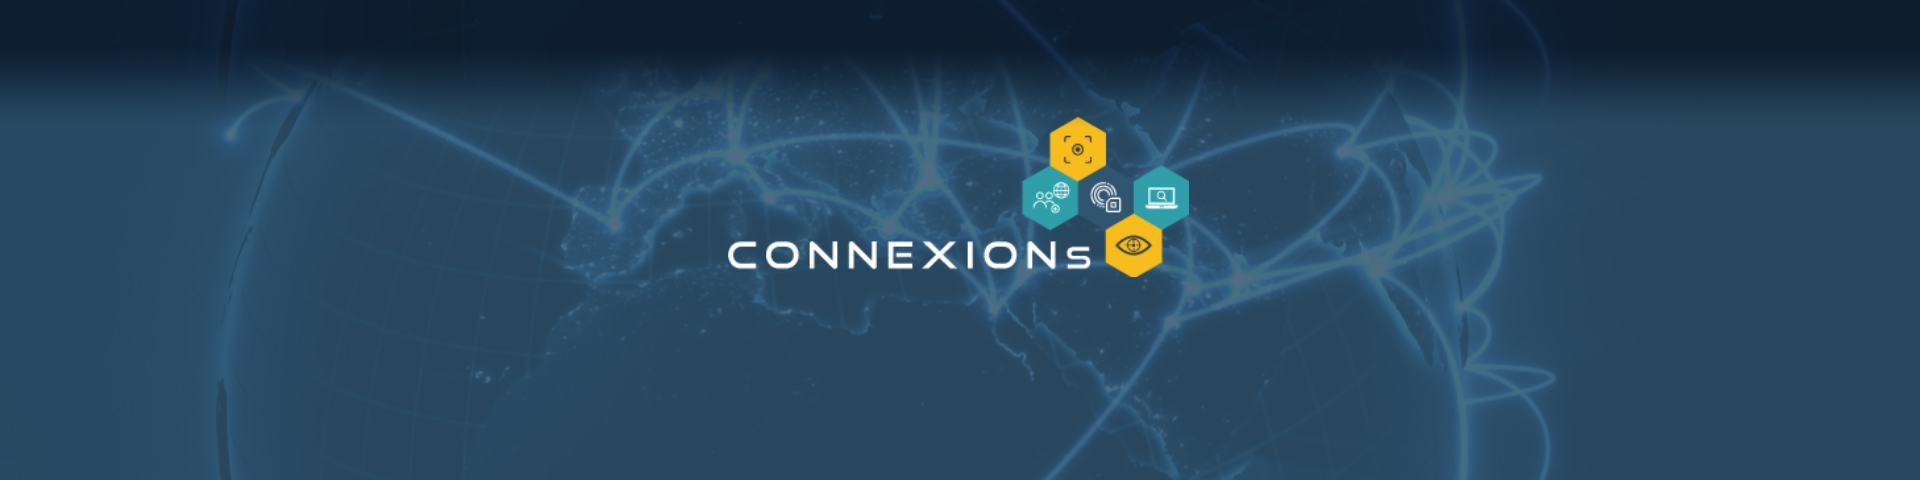 Connexions project logo image